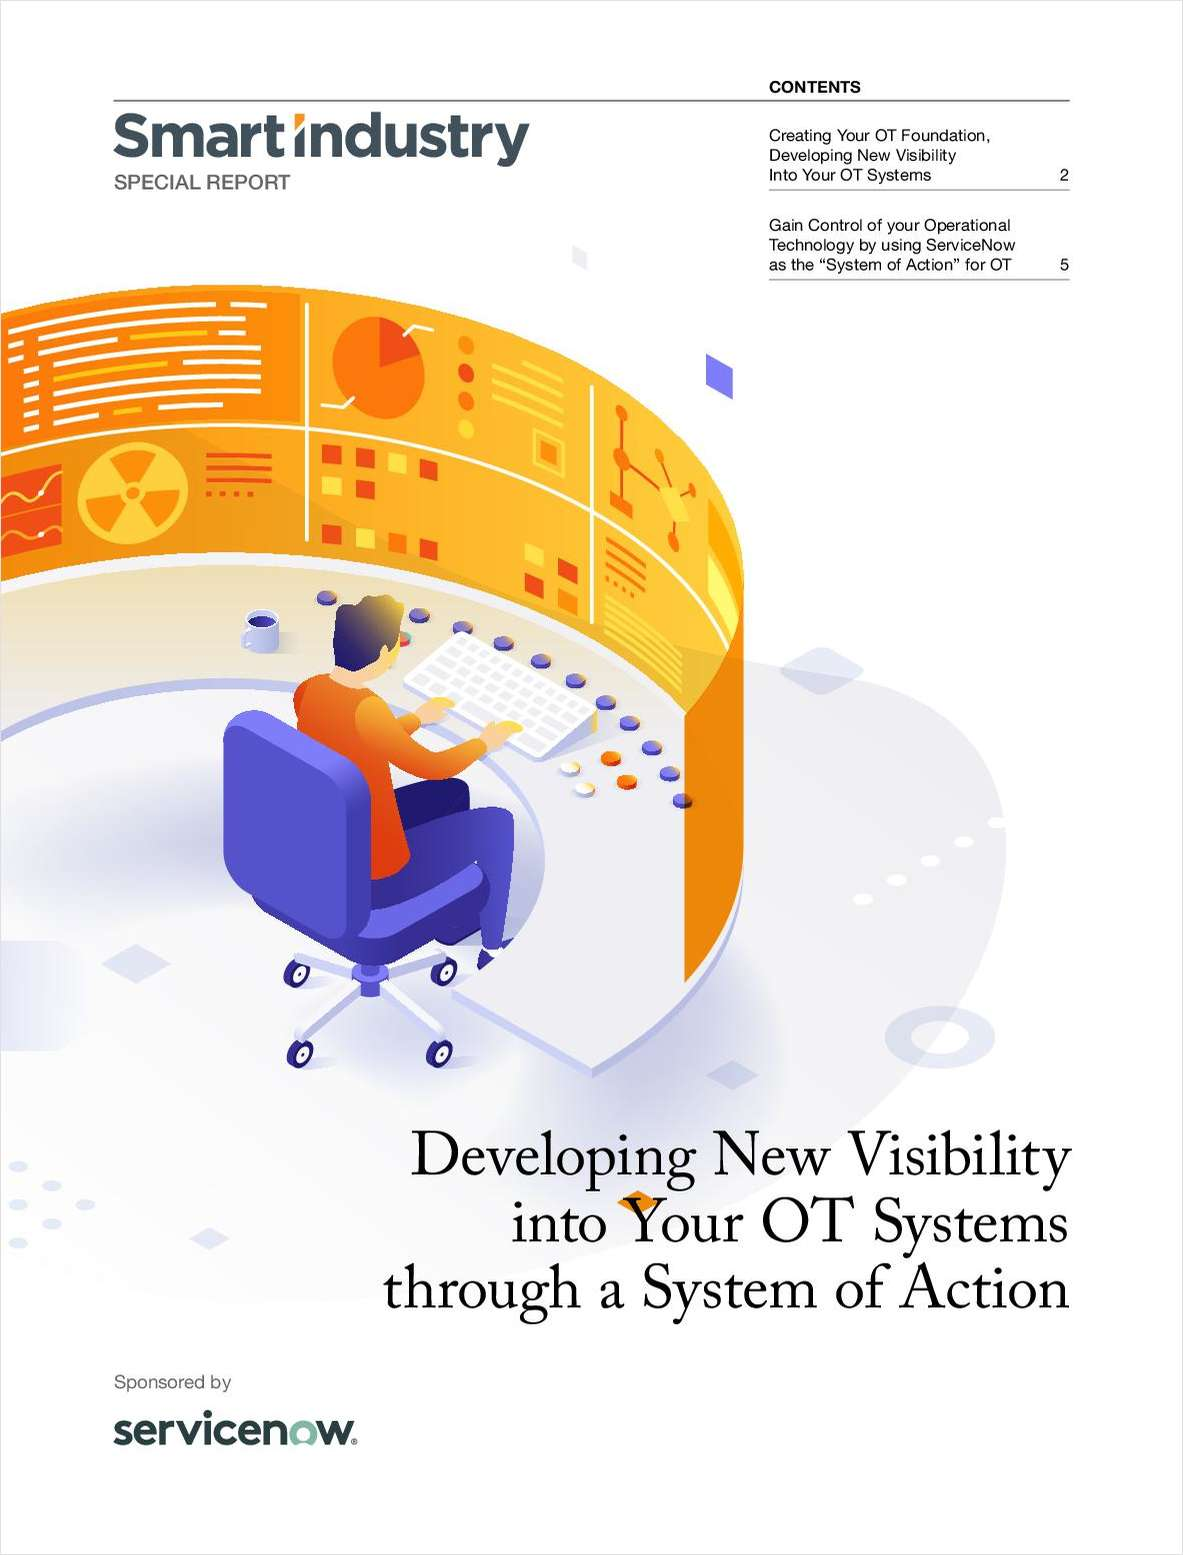 Developing New Visibility into Your OT Systems through a System of Action